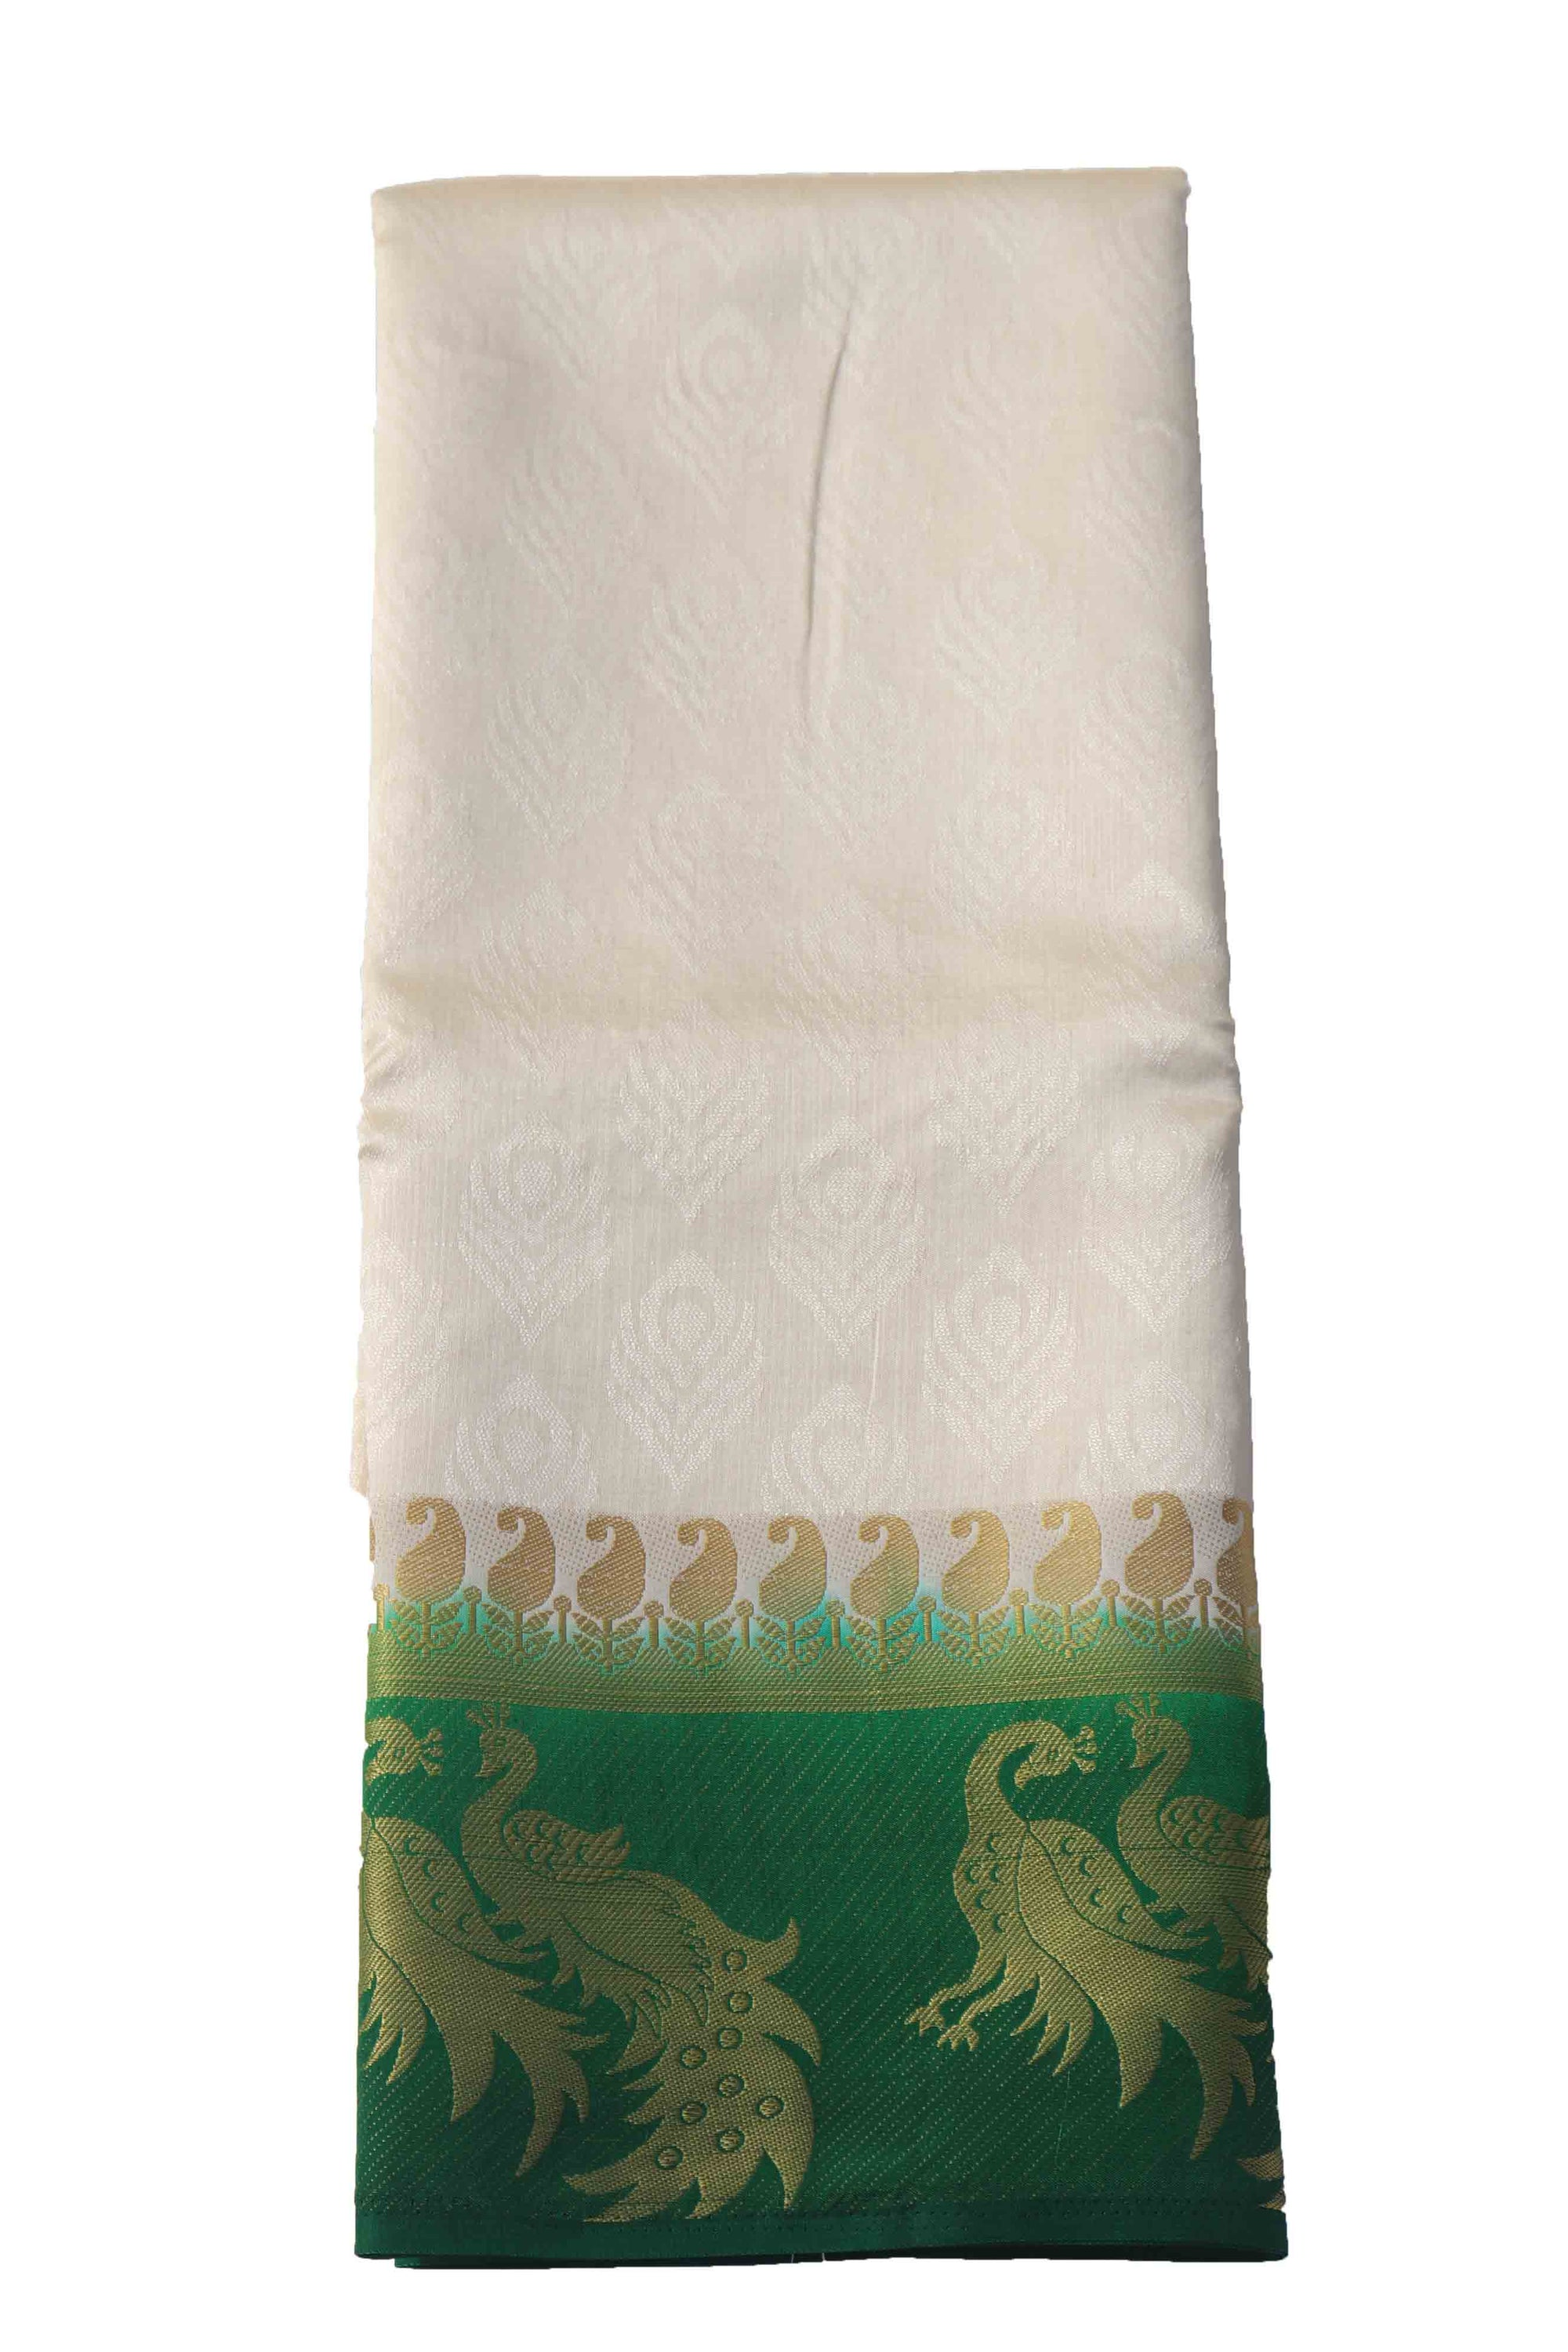 arars Women's Kanchipuram Pattu plain embosed Silk Saree With Blouse (545_cream_green )